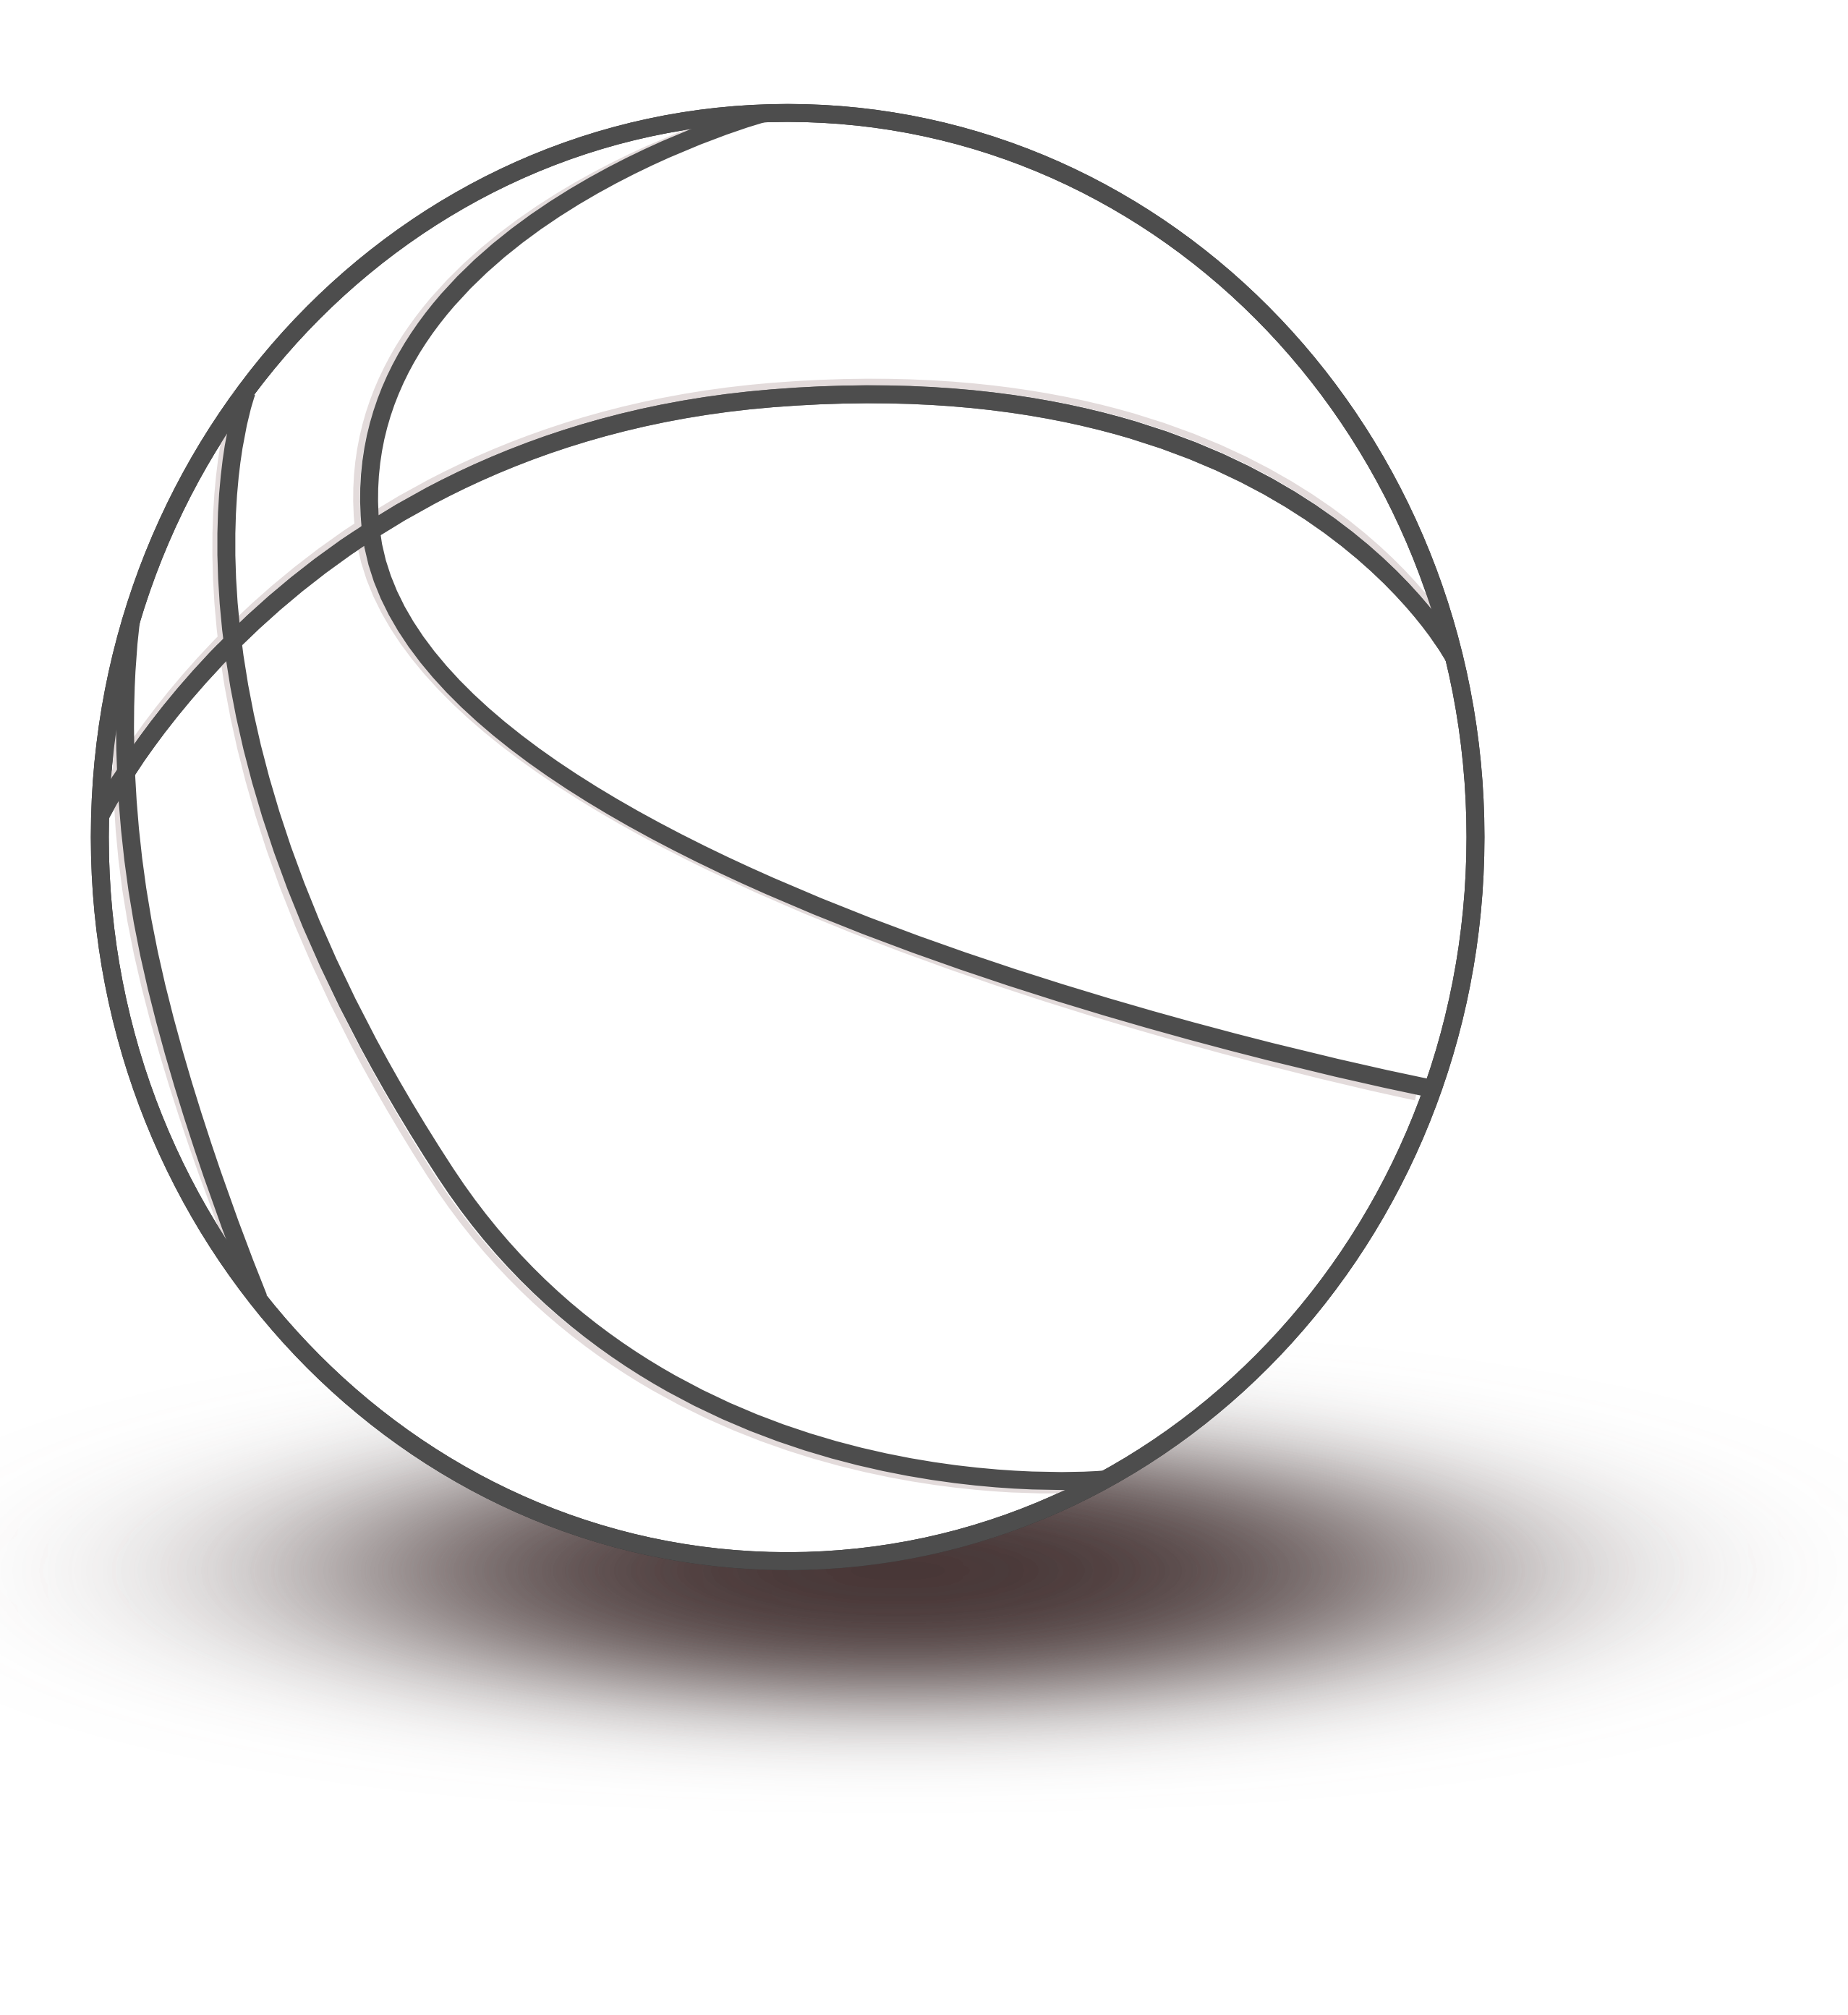 Moving basketball clipart picture royalty free download Basketball Black Background Clipart picture royalty free download